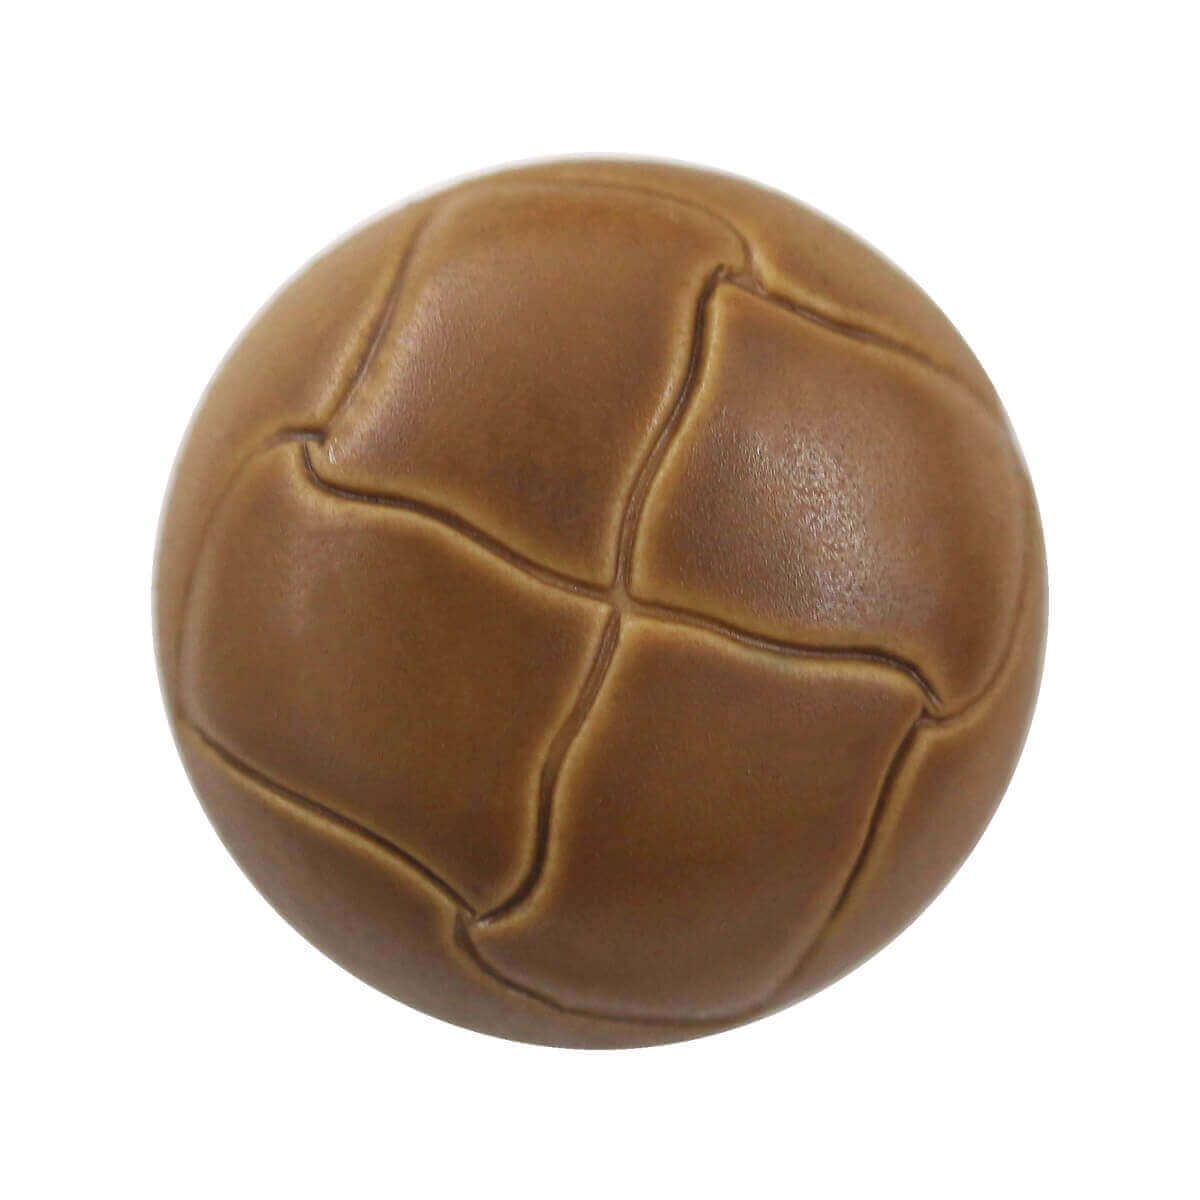 G077-YTA6-nylon-button-imitation-leather-color-light-brown